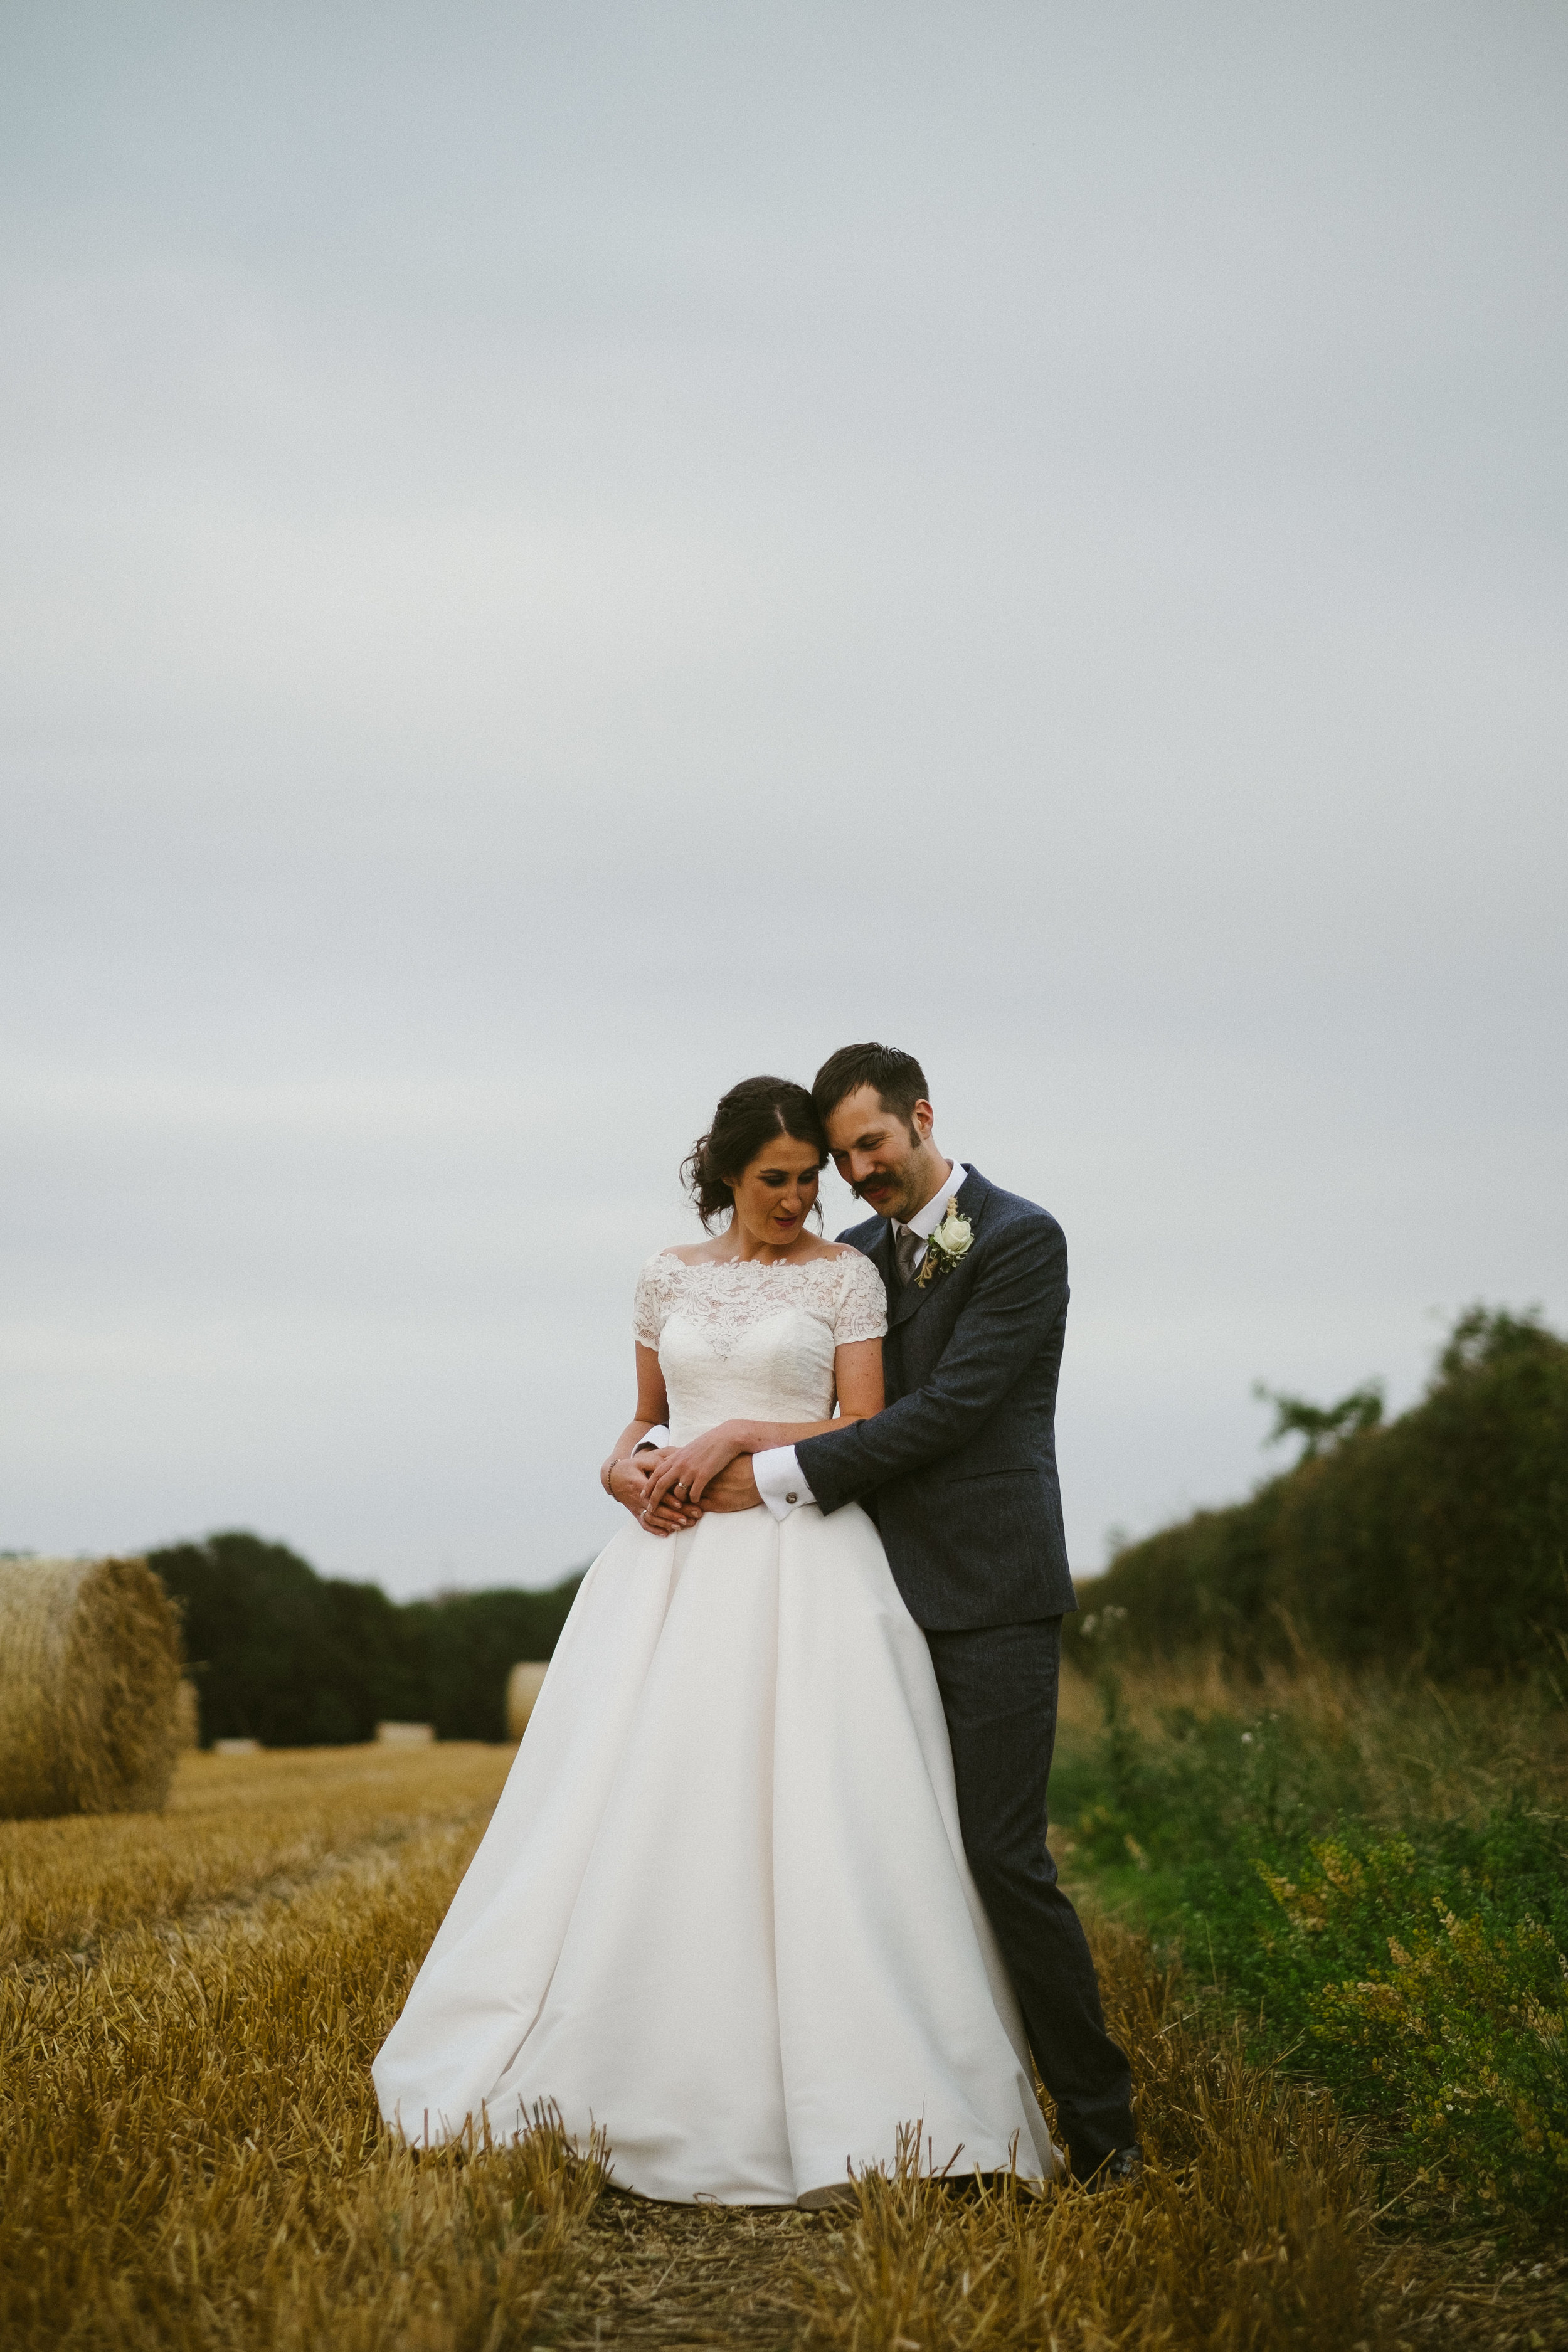 Bride and groom hold each other close in wheatfield in Yorkshire